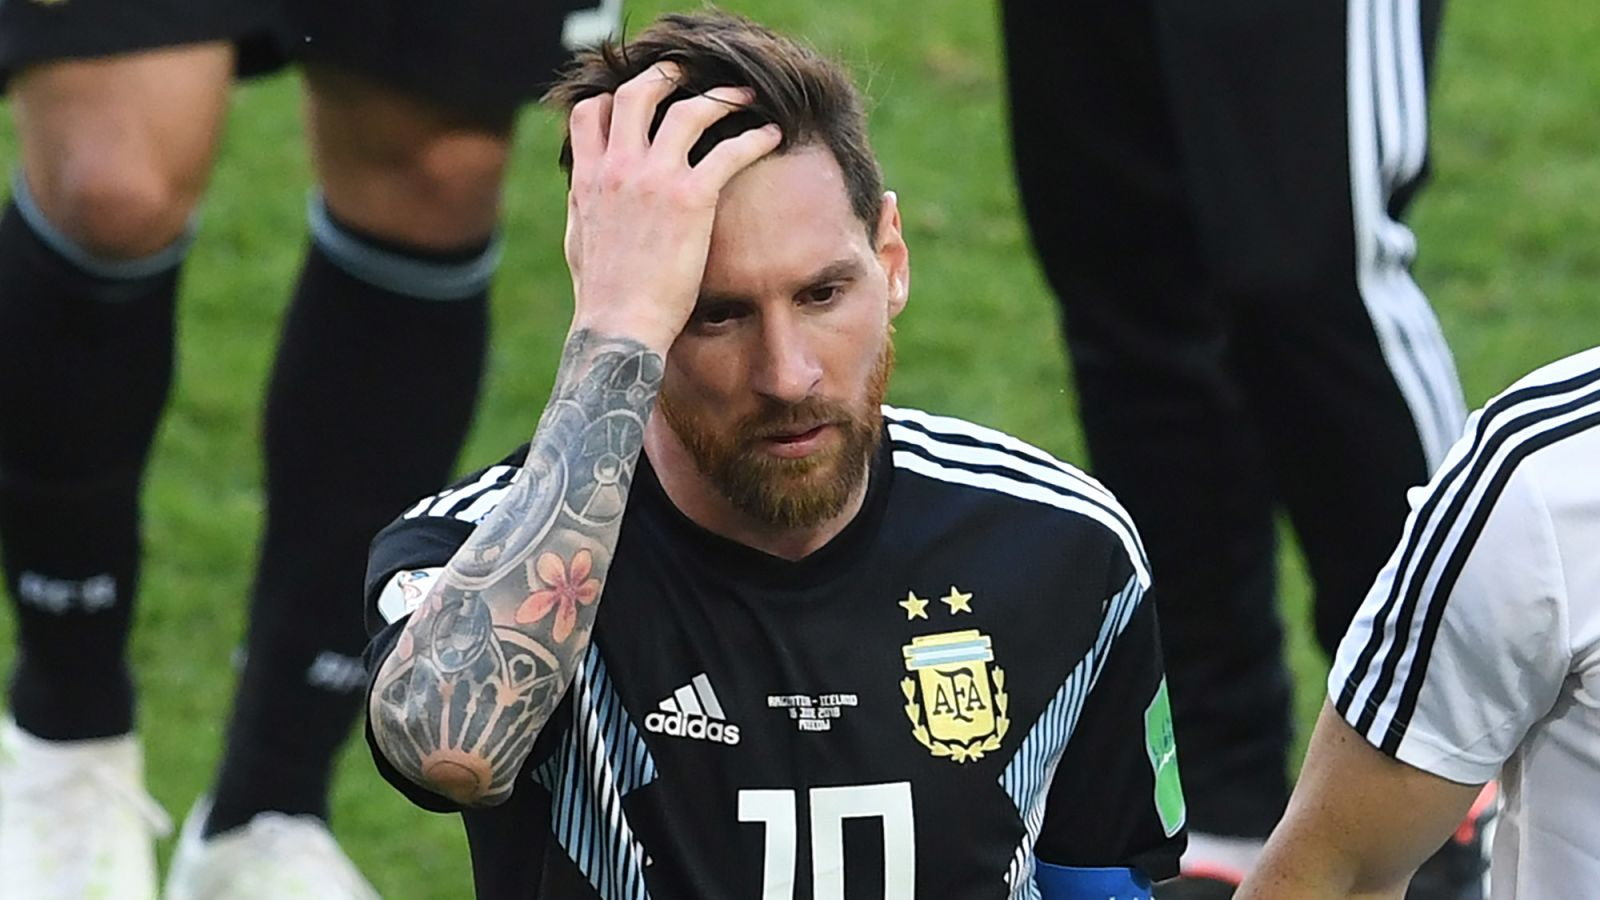 Celia Messi: Stop Criticising My Son, His Dream Is To Win World Cup